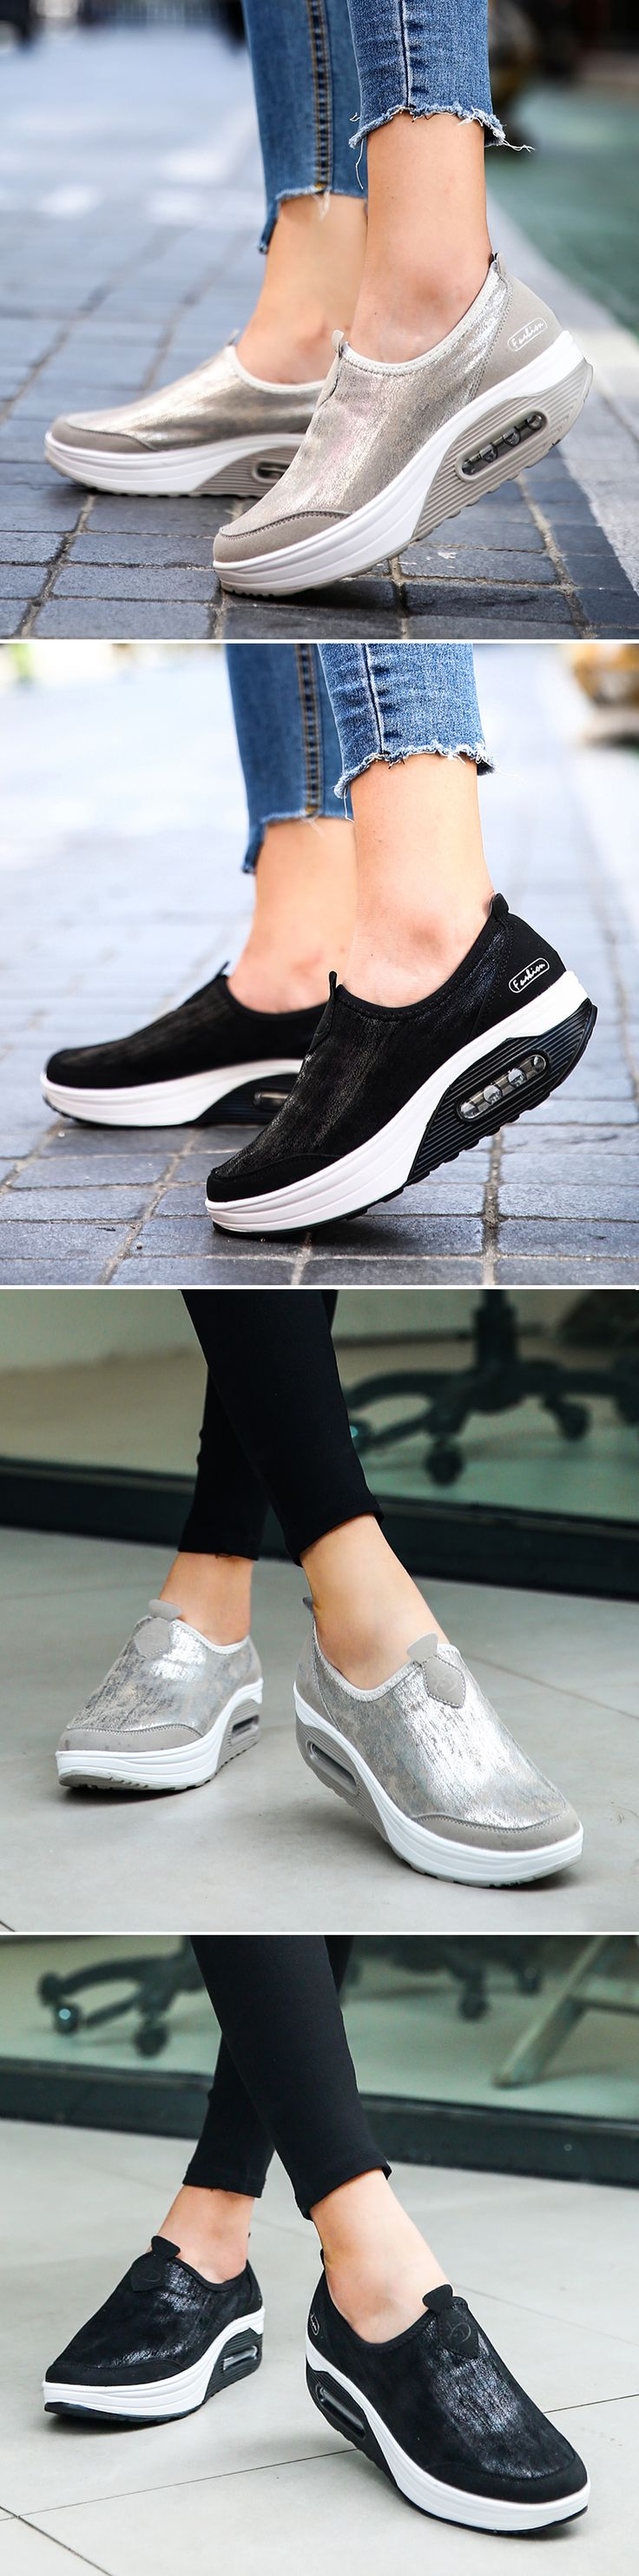 47% OFF! US$32.20 Comfortable Rocker Sole Slip On Shake Casual Shoes. SHOP NOW!